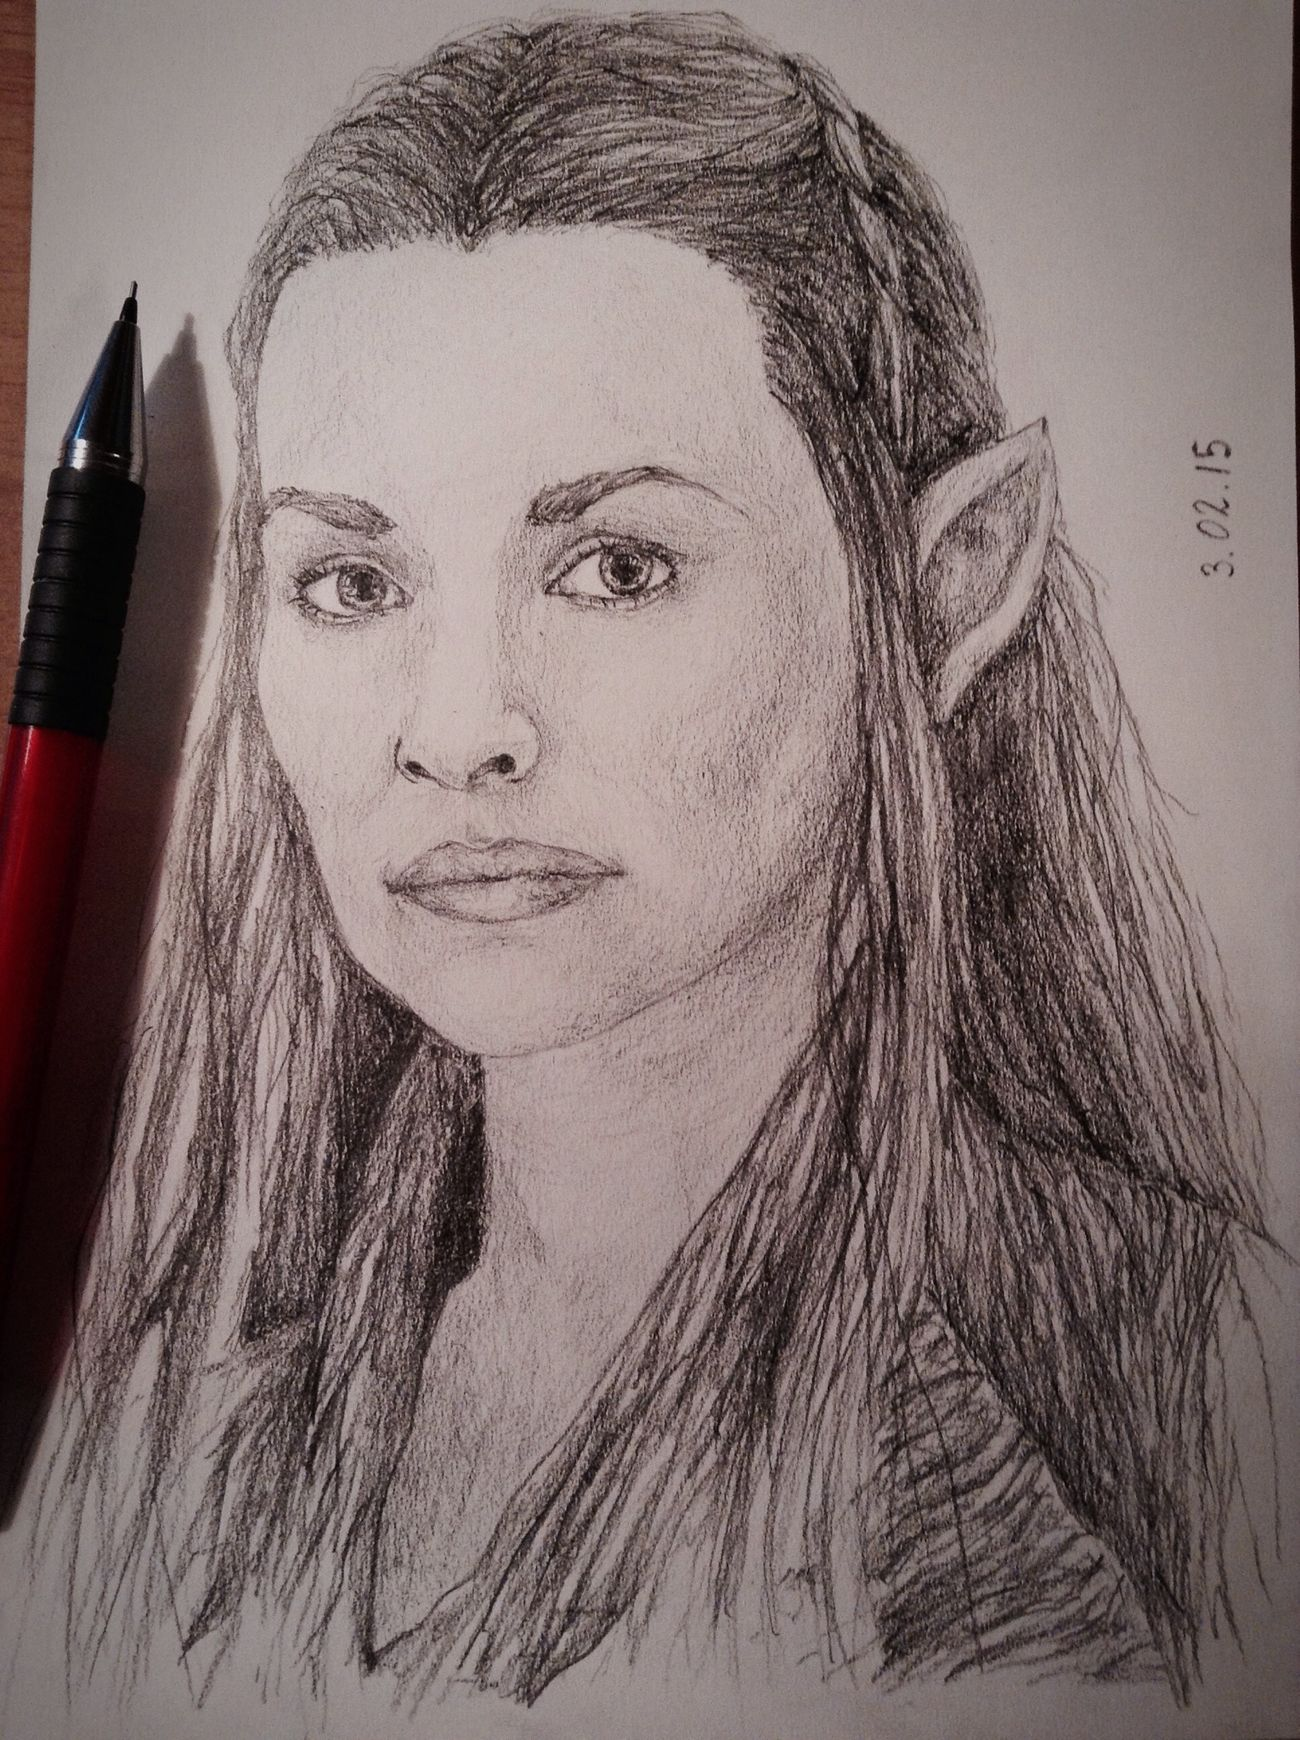 ✏️?Tauriel? Tauriel Drawing Exciting, Portrait Fanart Hobbit Art Cute Pencil Drawing Cool